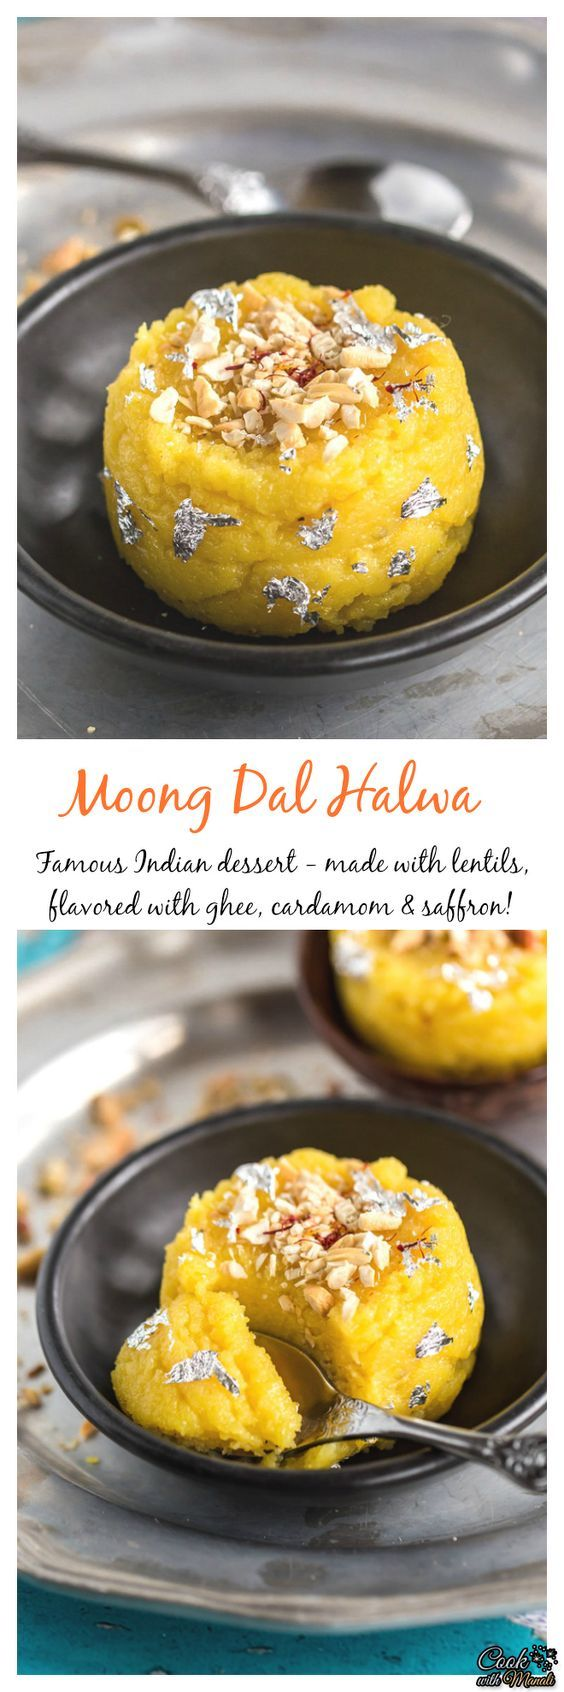 Delicious Moong Dal Halwa